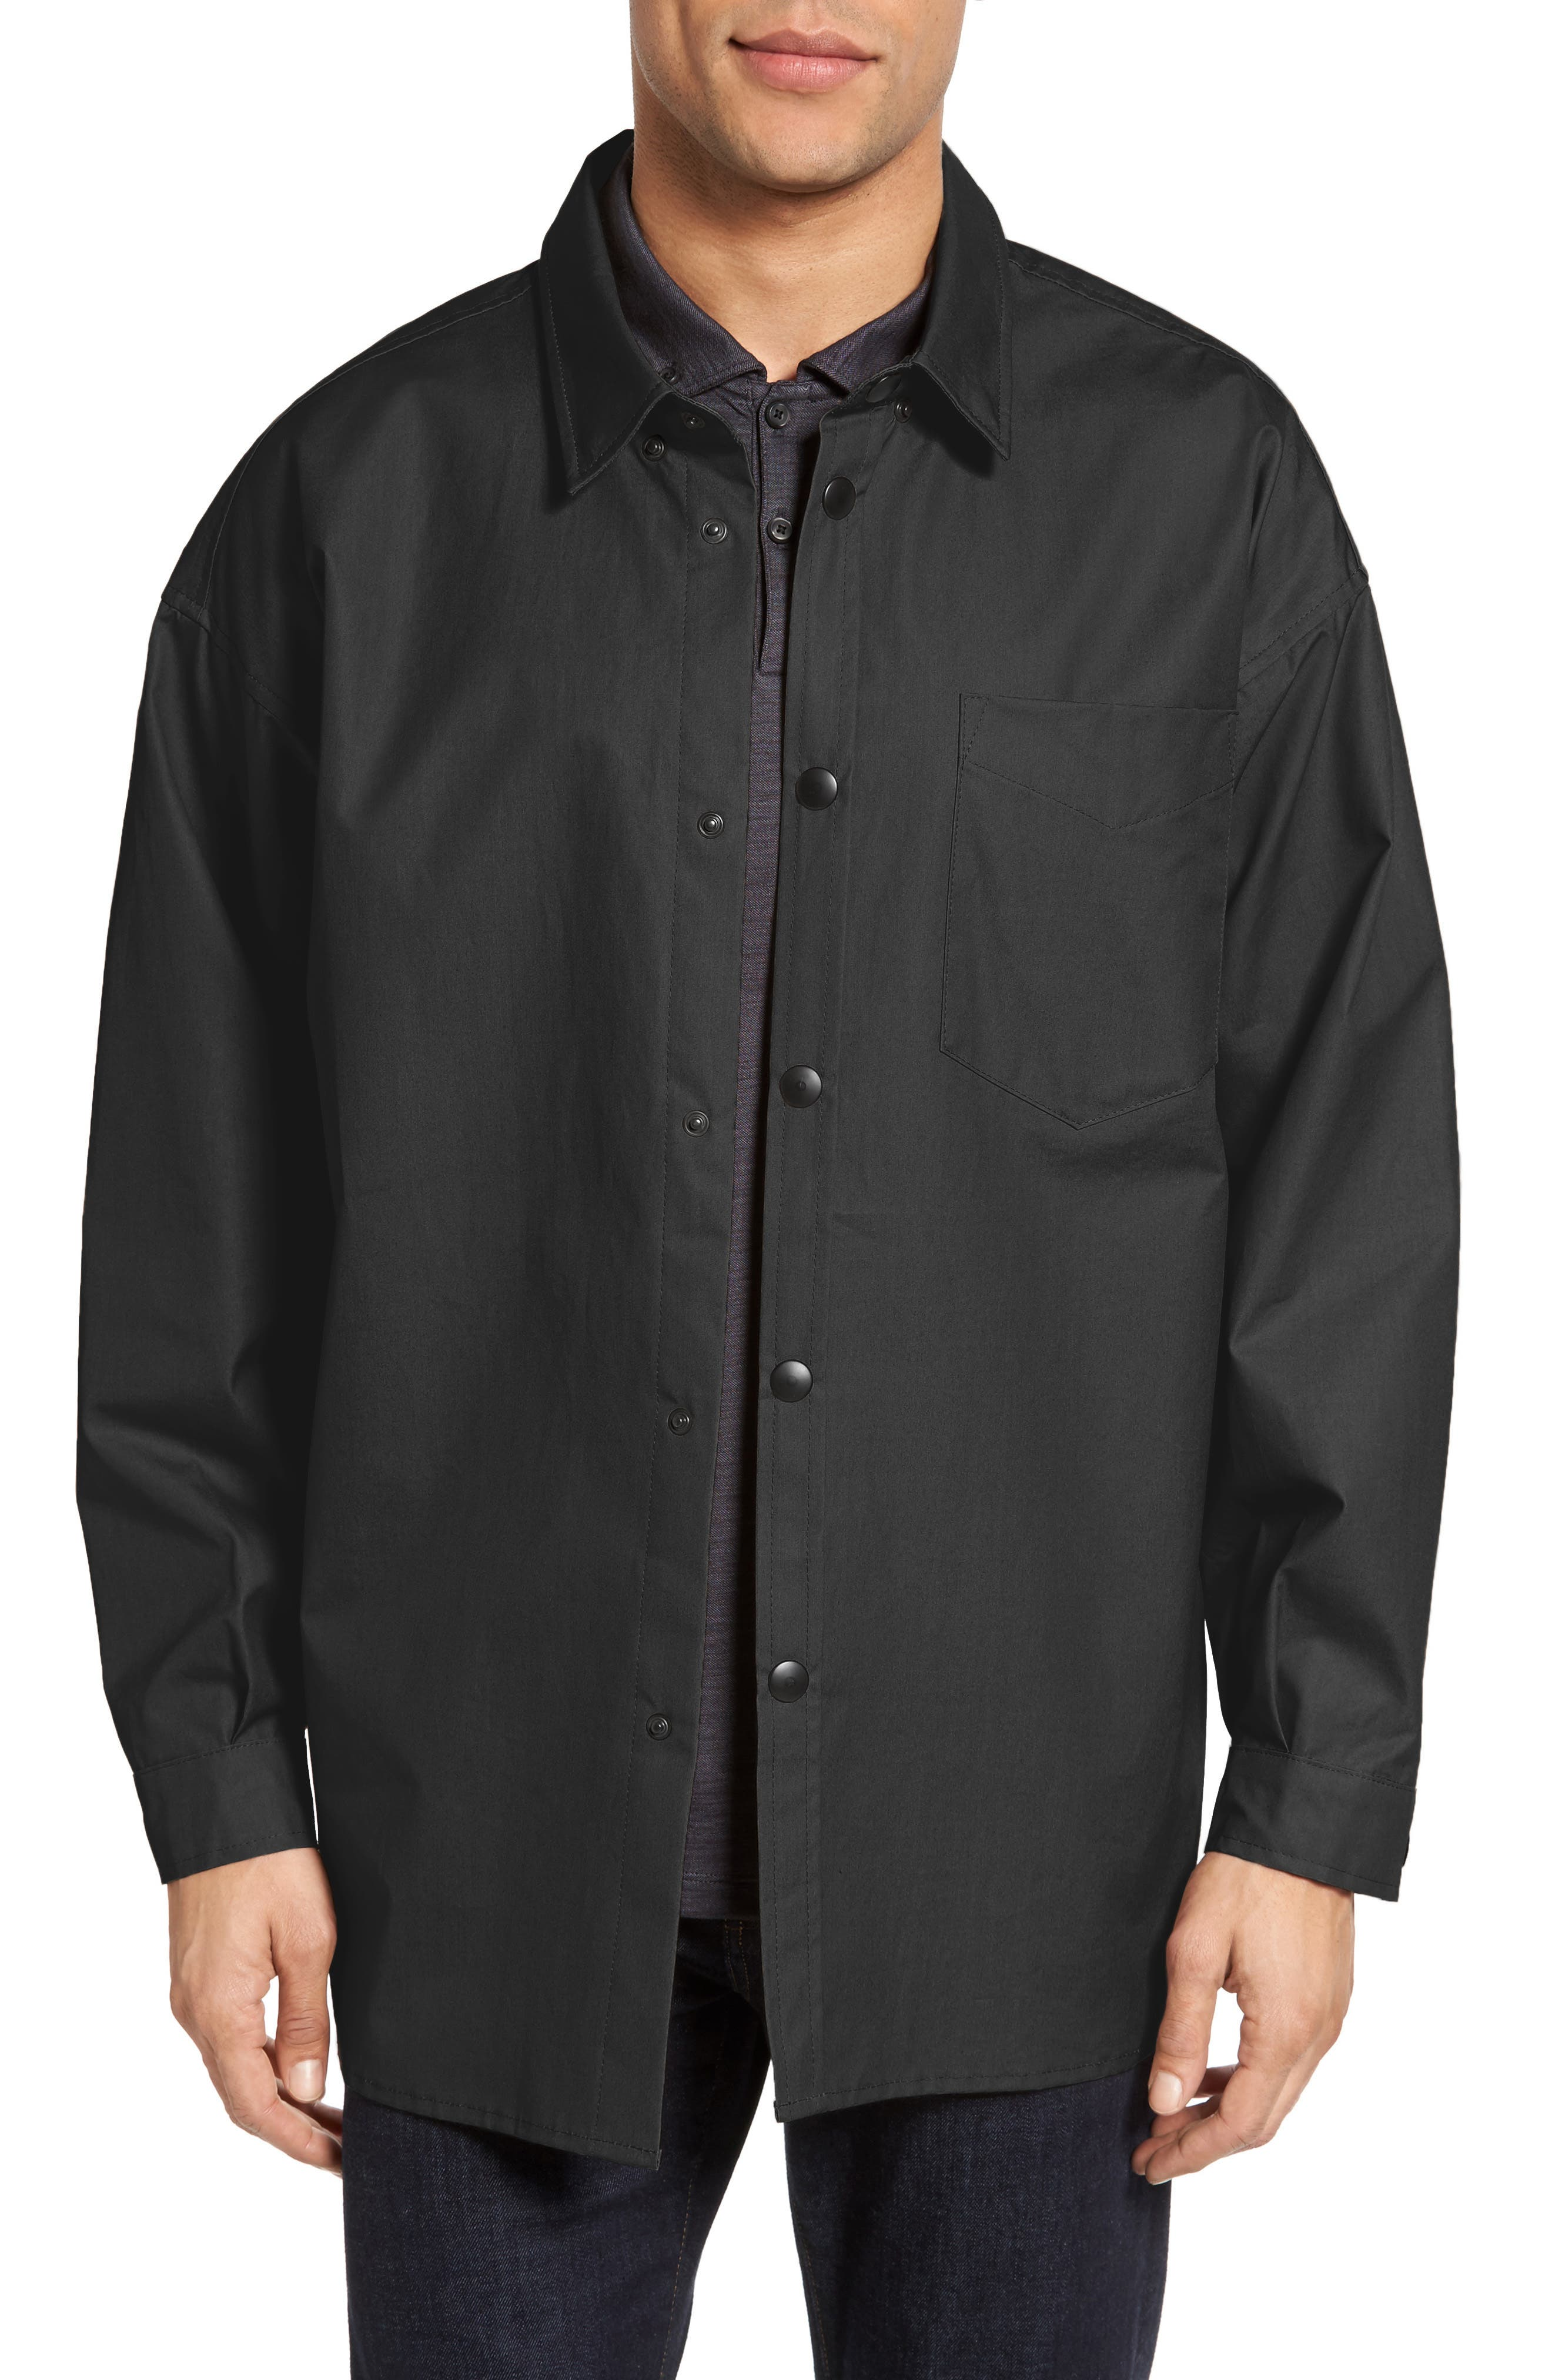 Lerum Relaxed Fit Shirt Jacket,                             Main thumbnail 1, color,                             Black